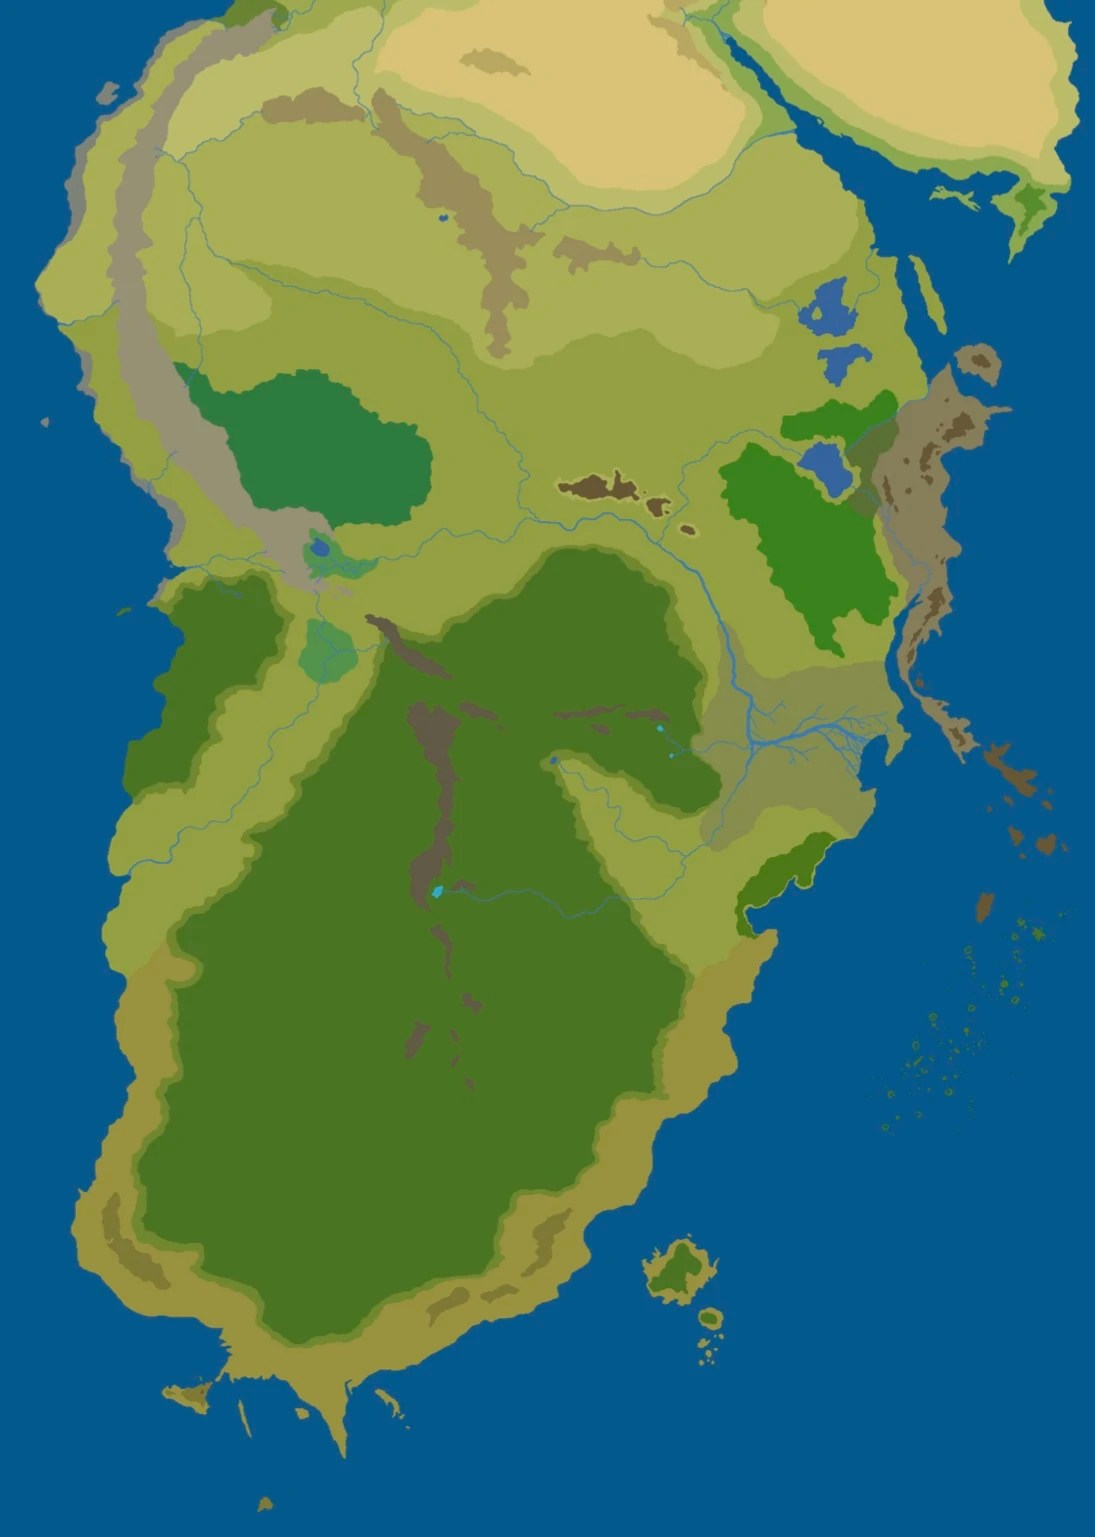 Minecraft Lord Of The Rings Map : minecraft, rings, Harad, Rings, Minecraft, Fandom